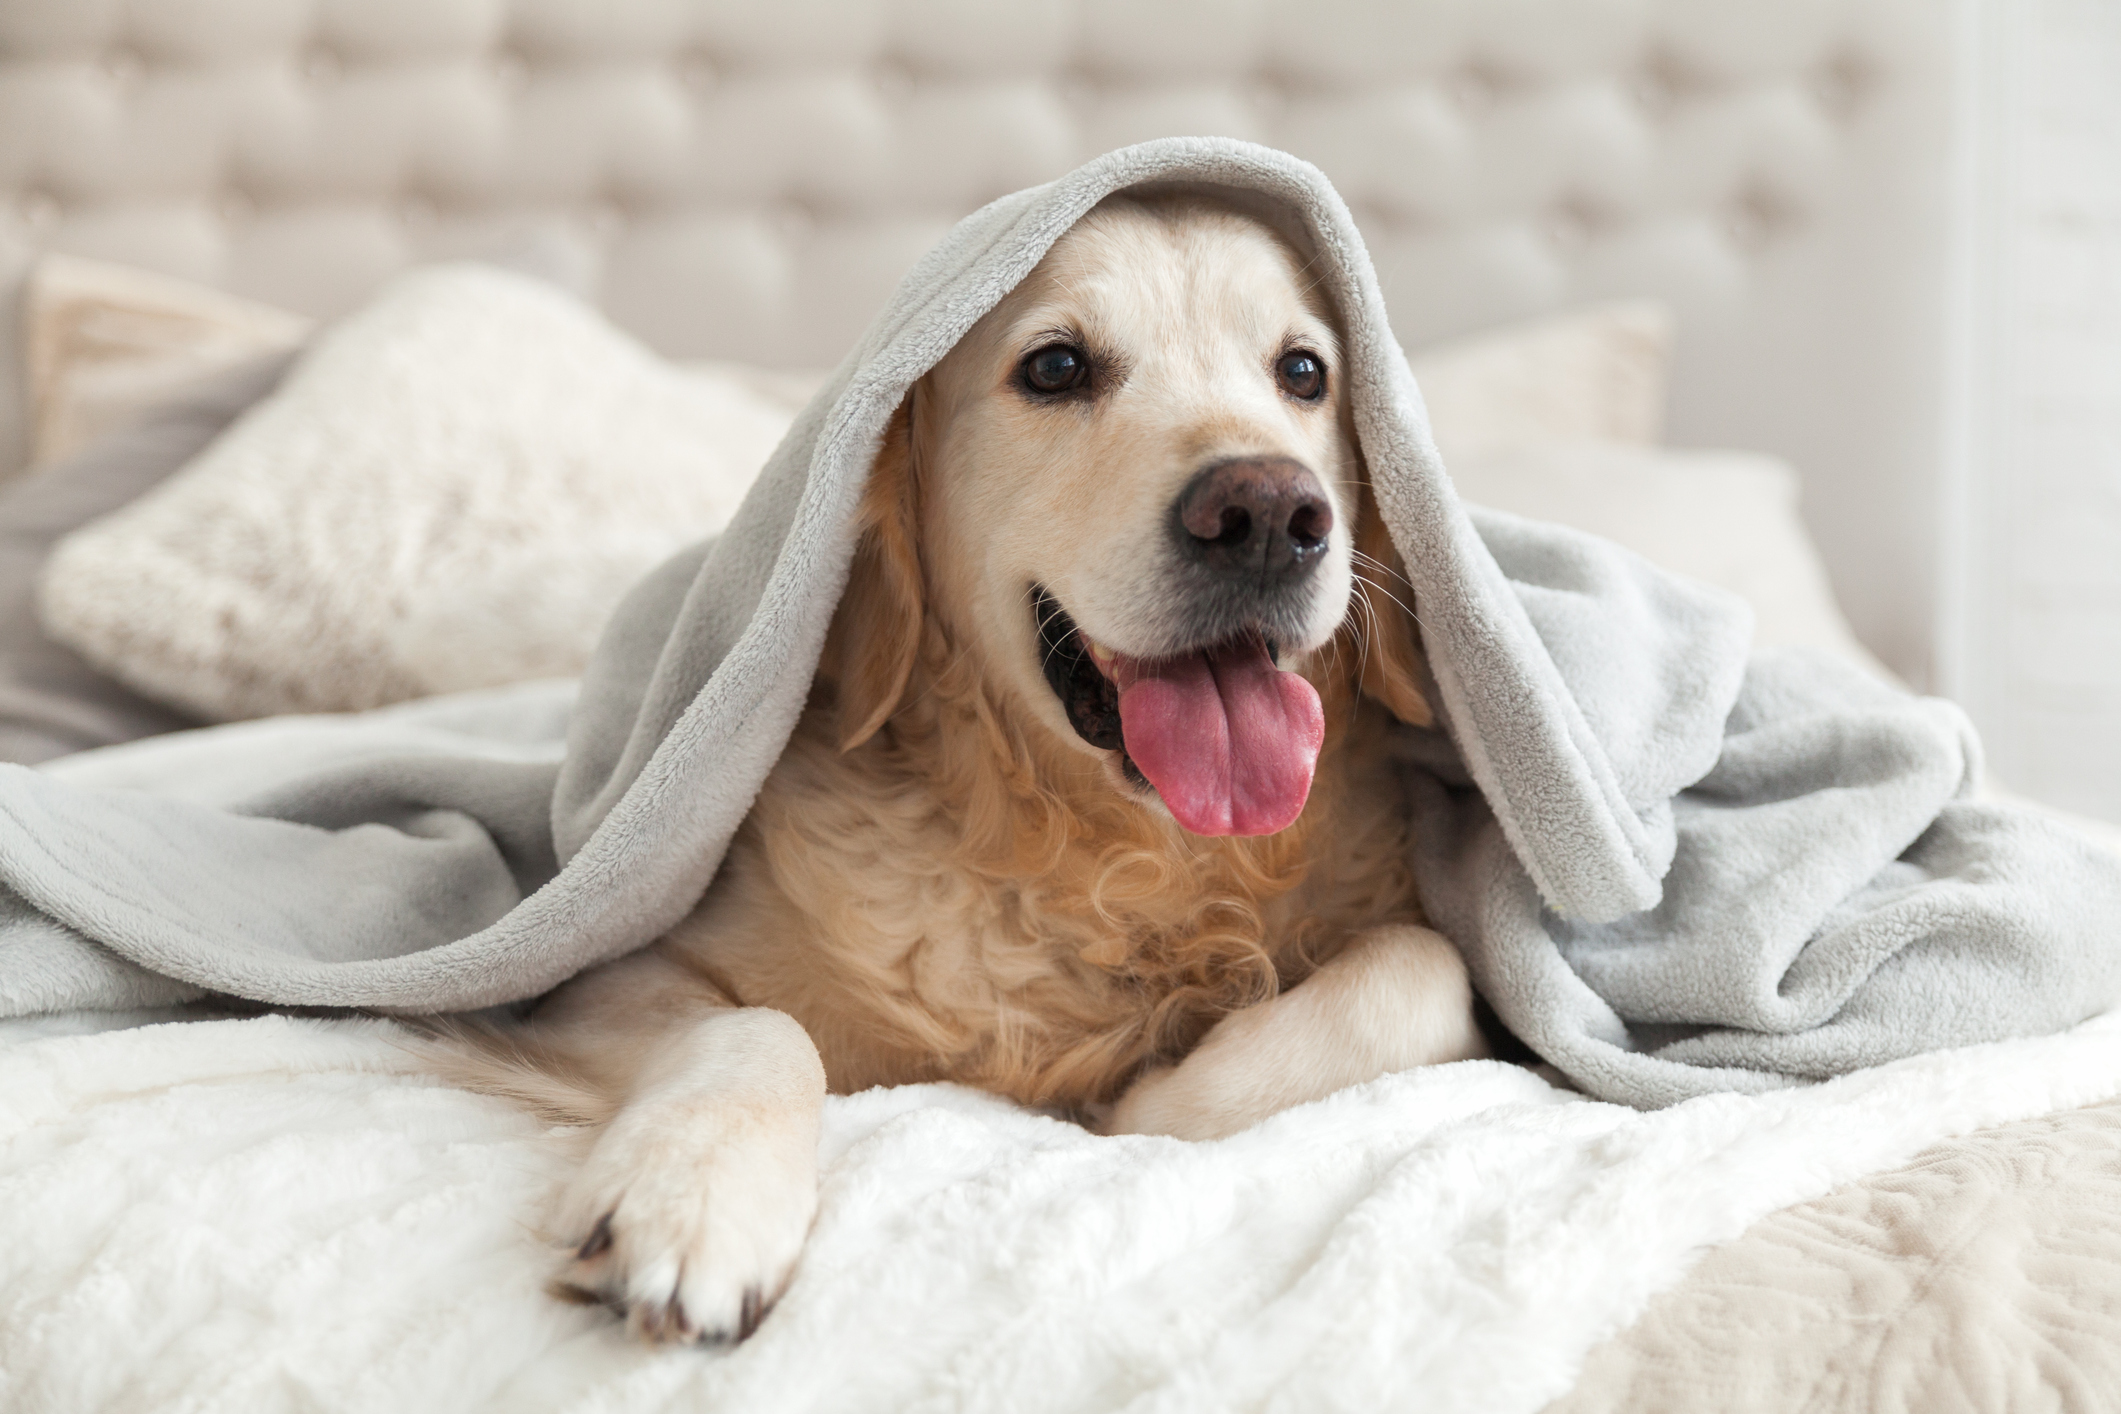 Dog sitting on bed with a blanket over its head